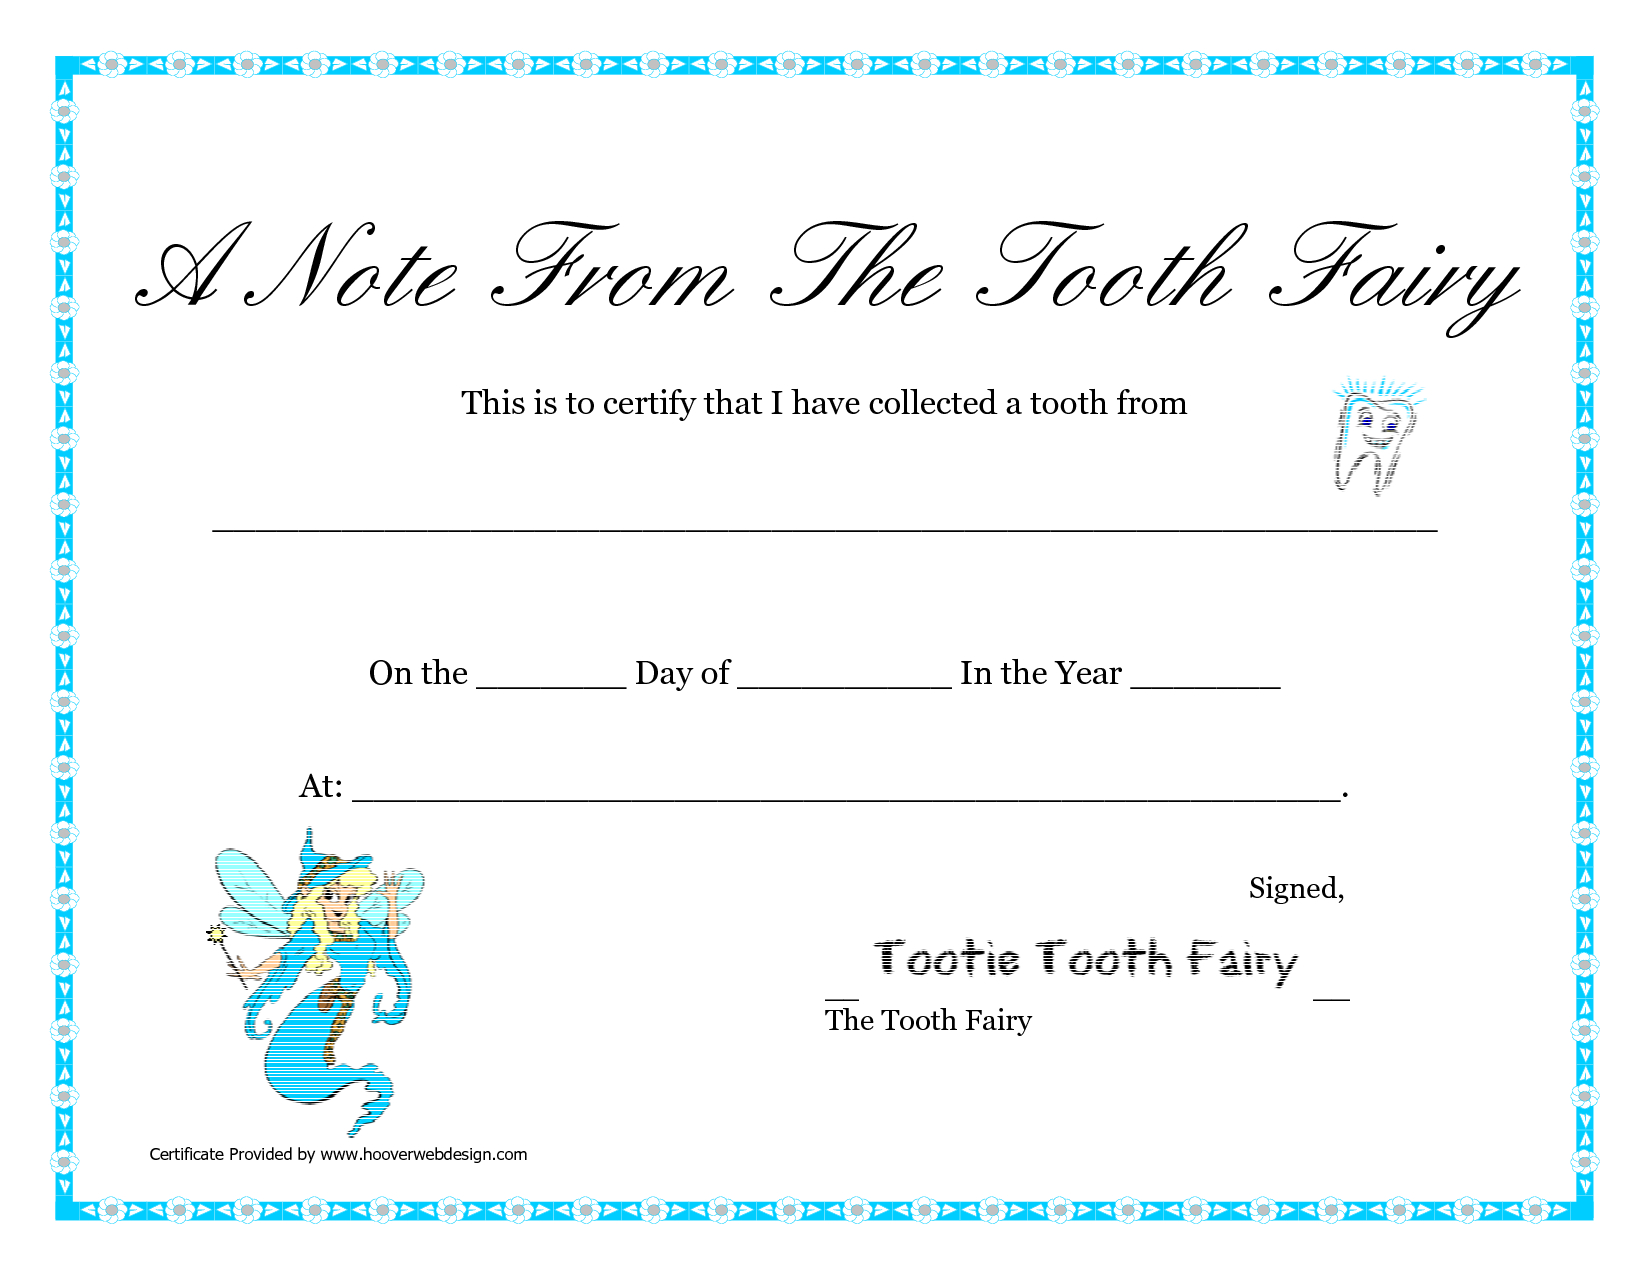 Free Printable Tooth Fairy Letter   Tooth Fairy Certificate - Tooth Fairy Stationery Free Printable